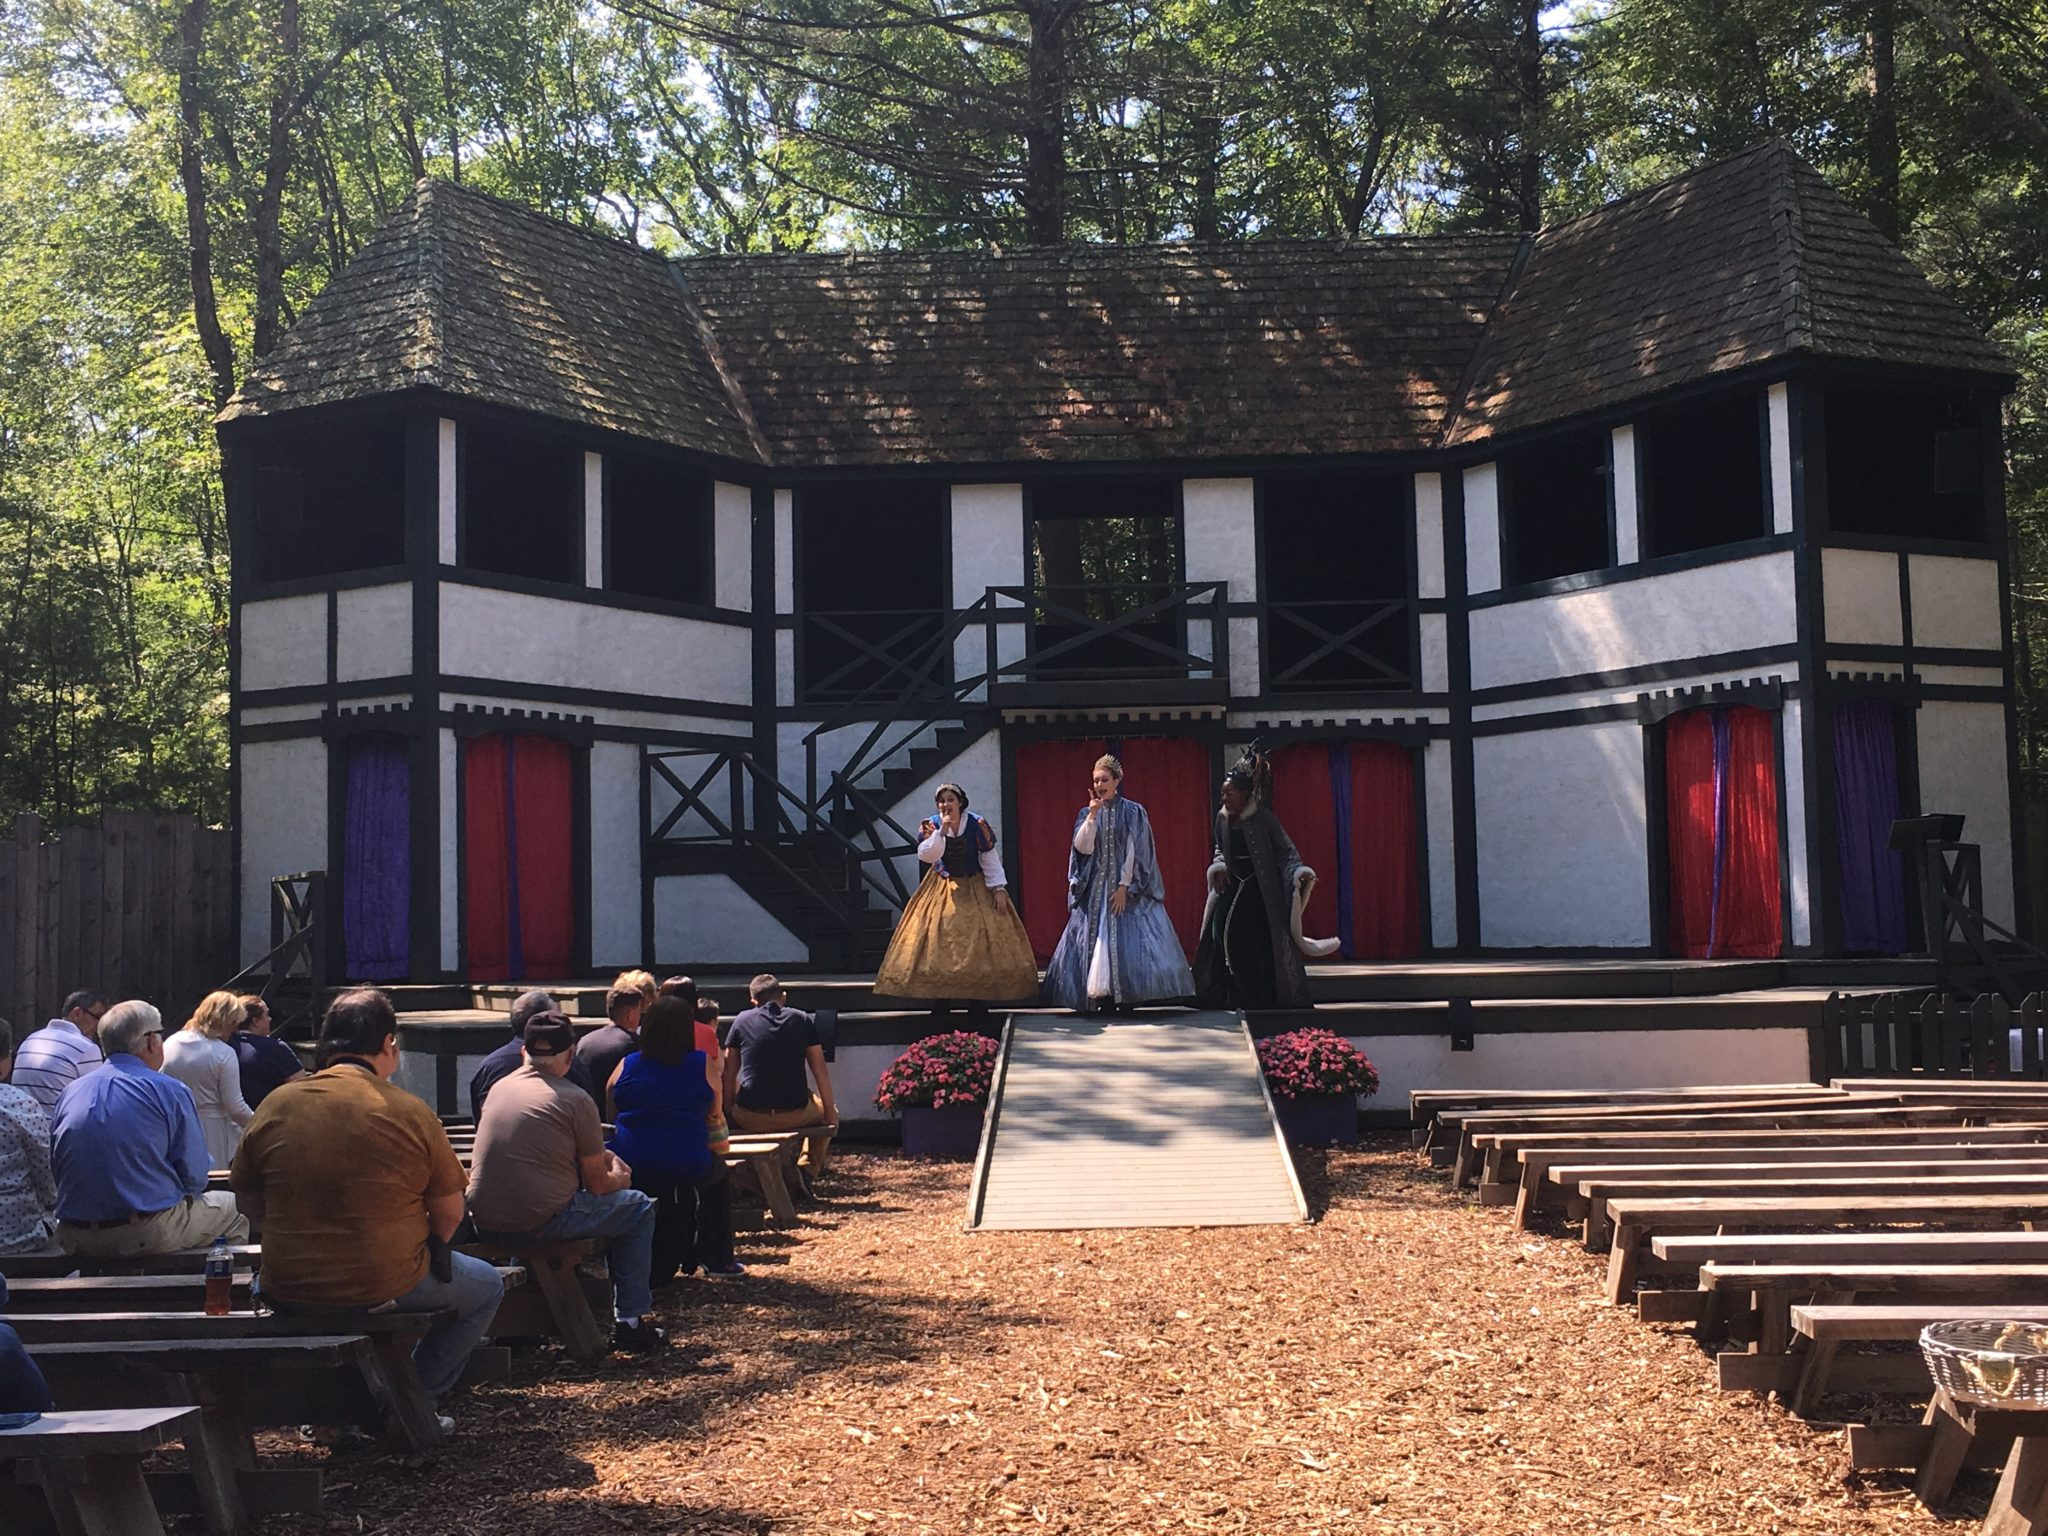 There is endless entertainment at King Richard's Faire